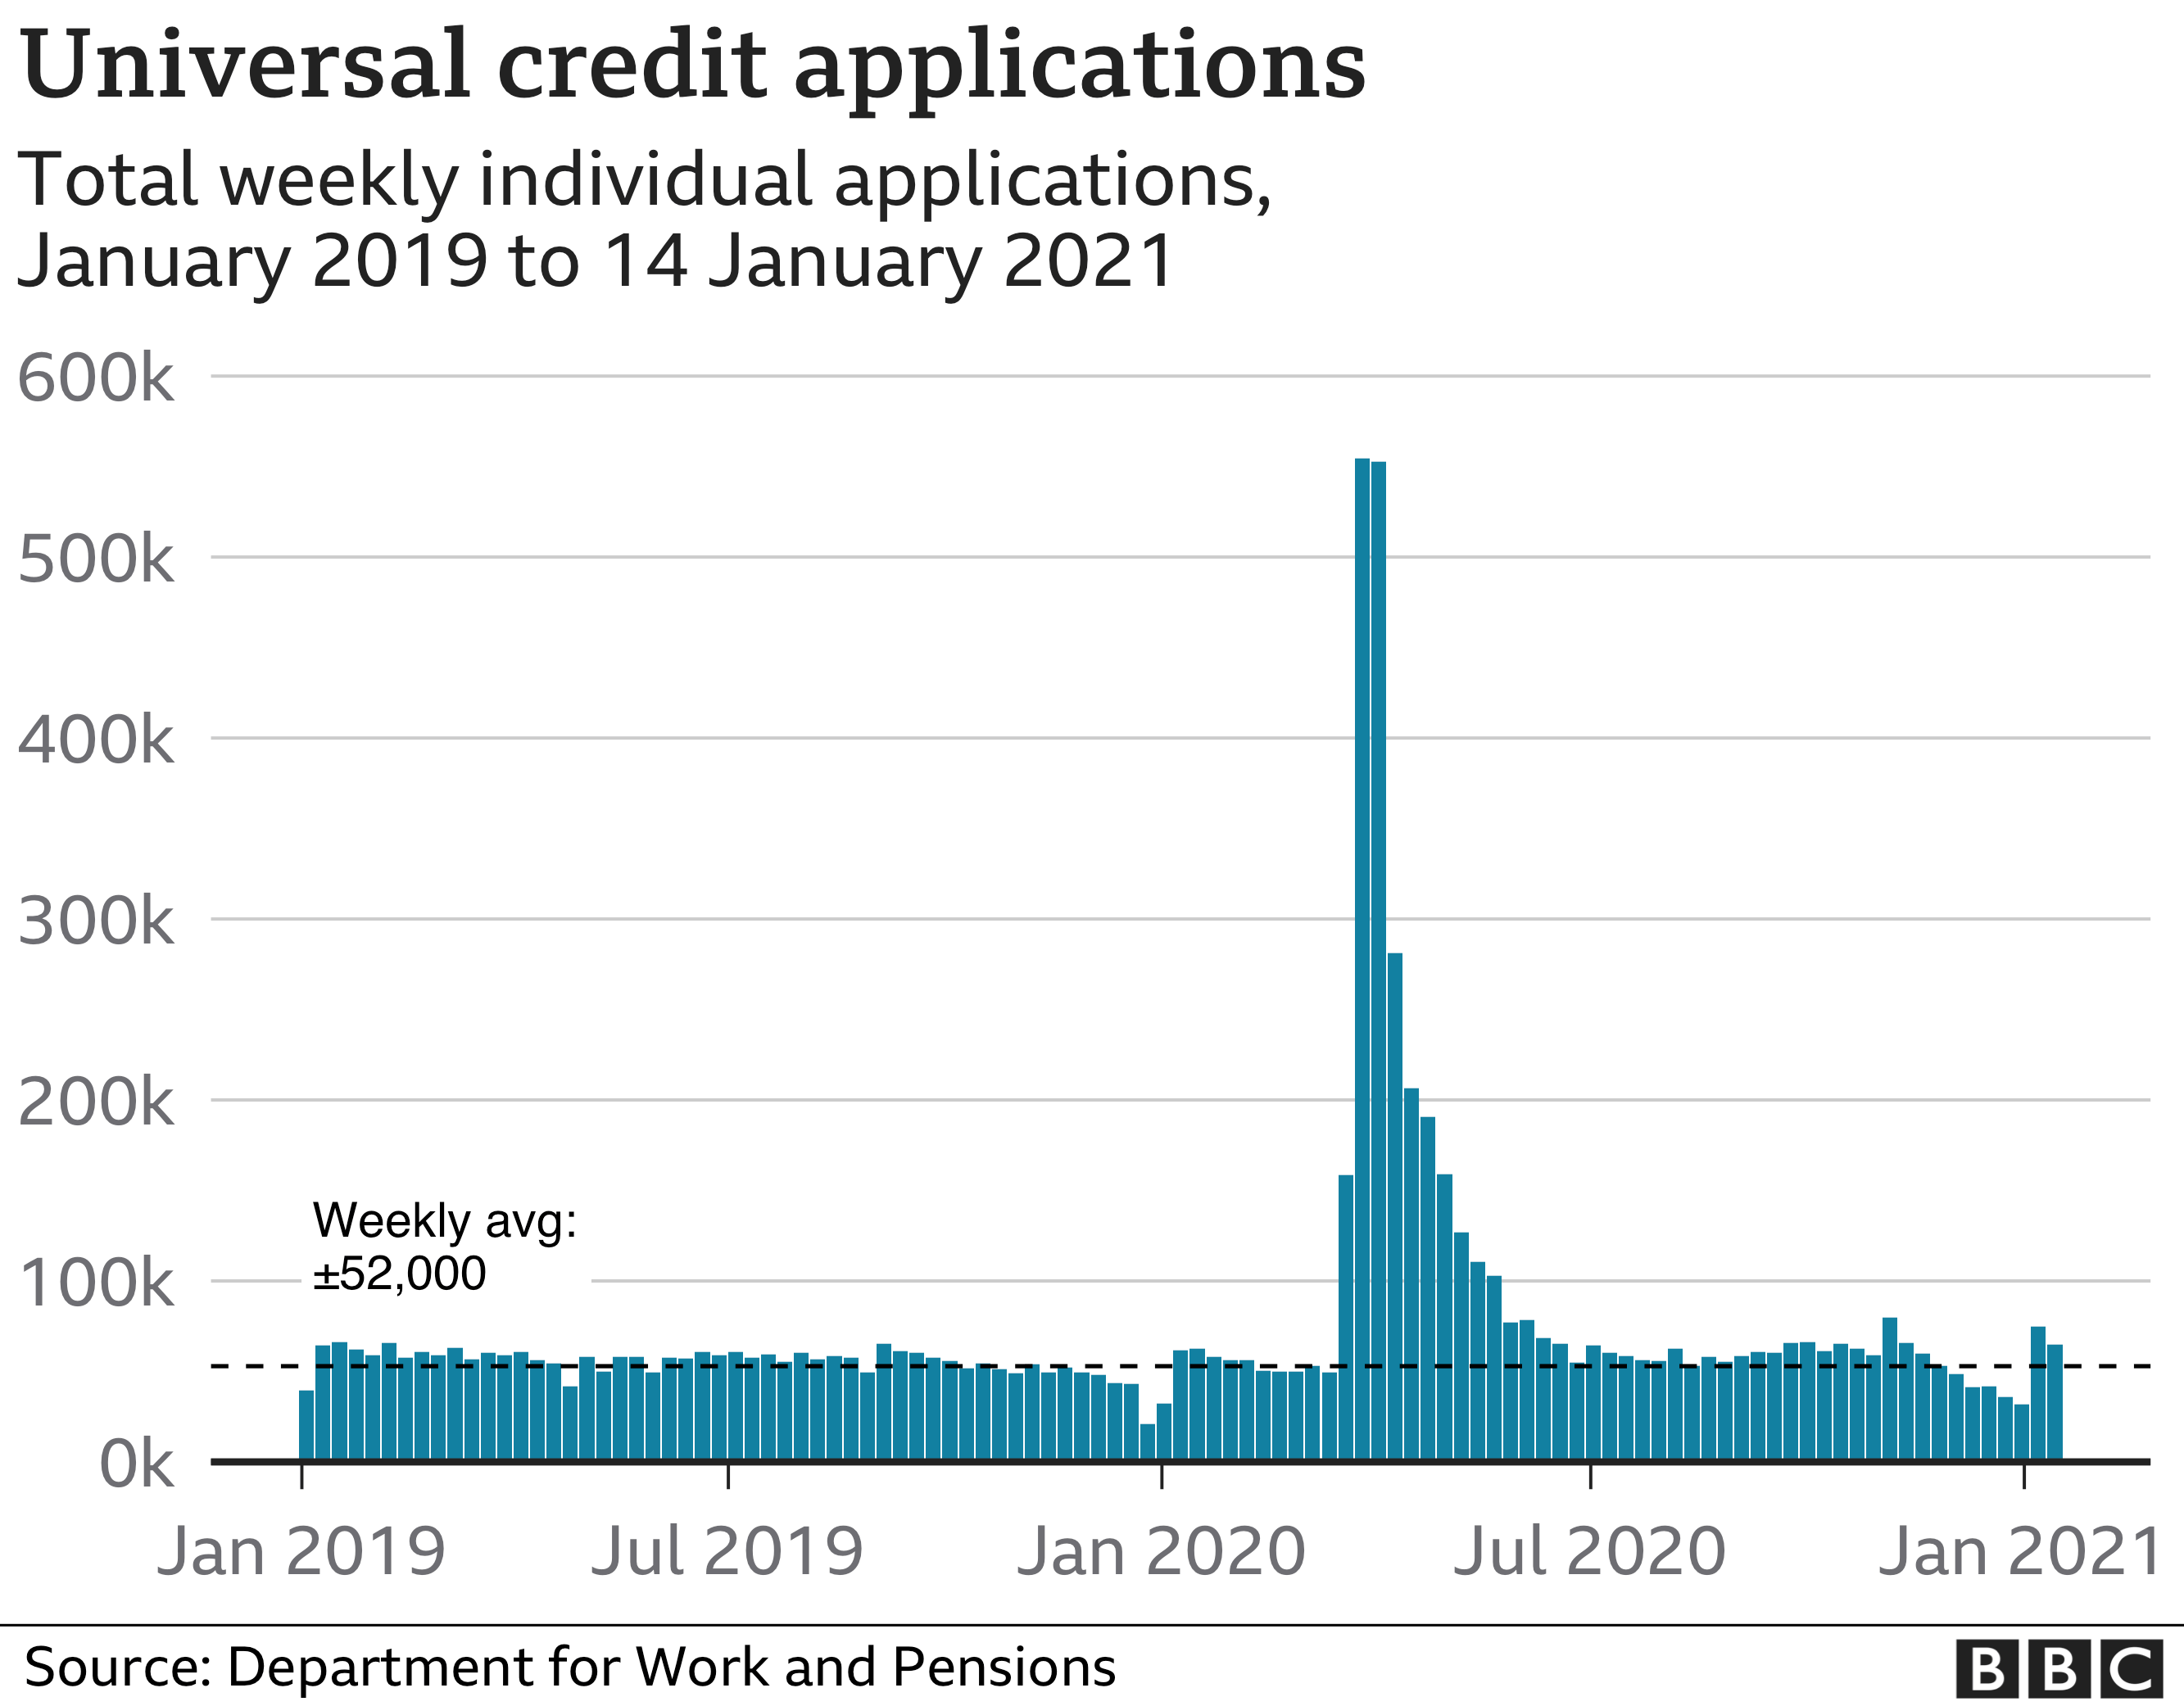 Number of universal credit applications